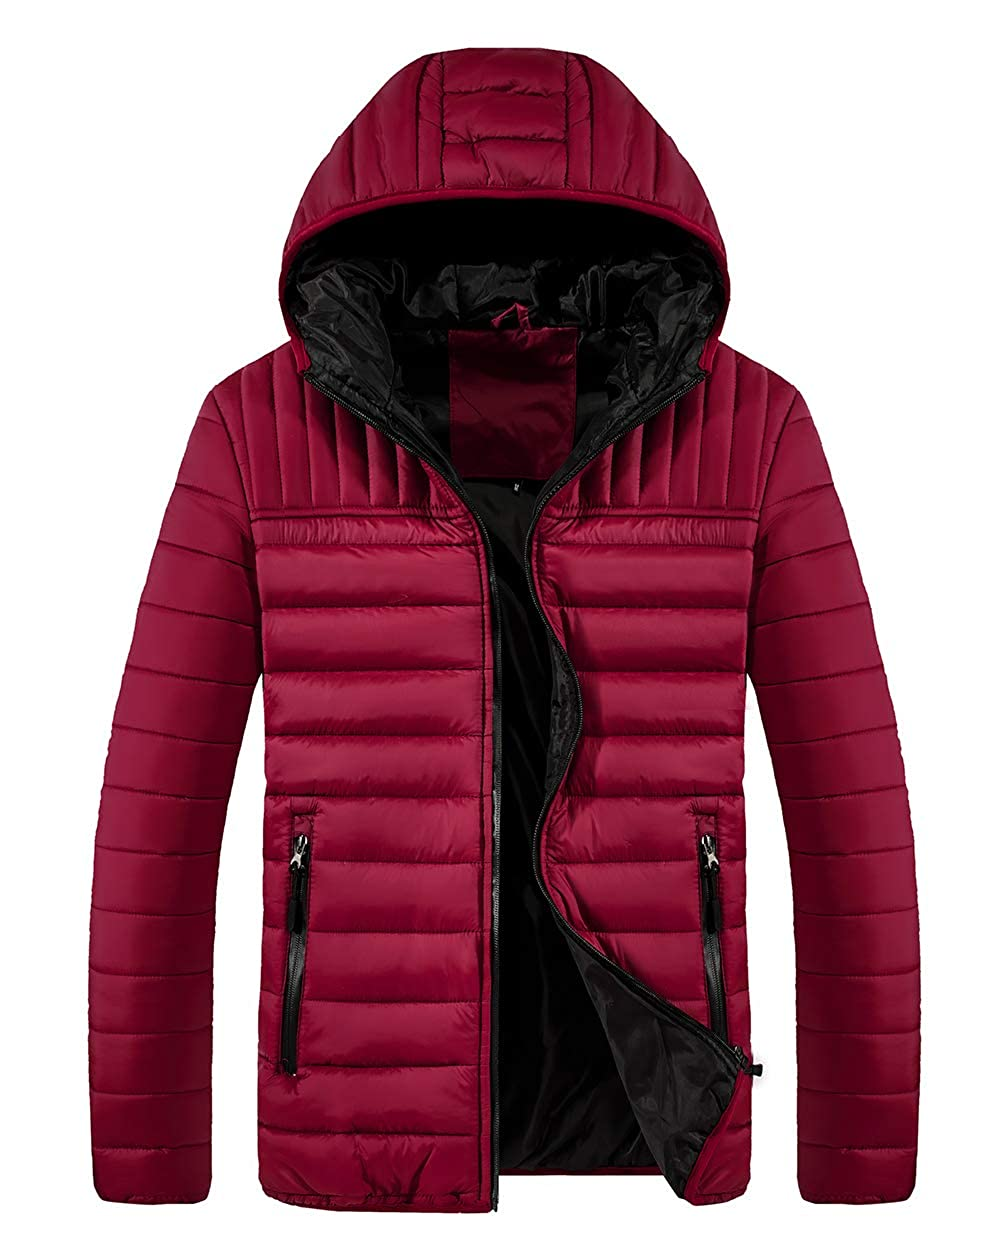 SCHONTAN Mens Lightweight Quilted Puffer Jacket with Hooded Outwear Down Coat